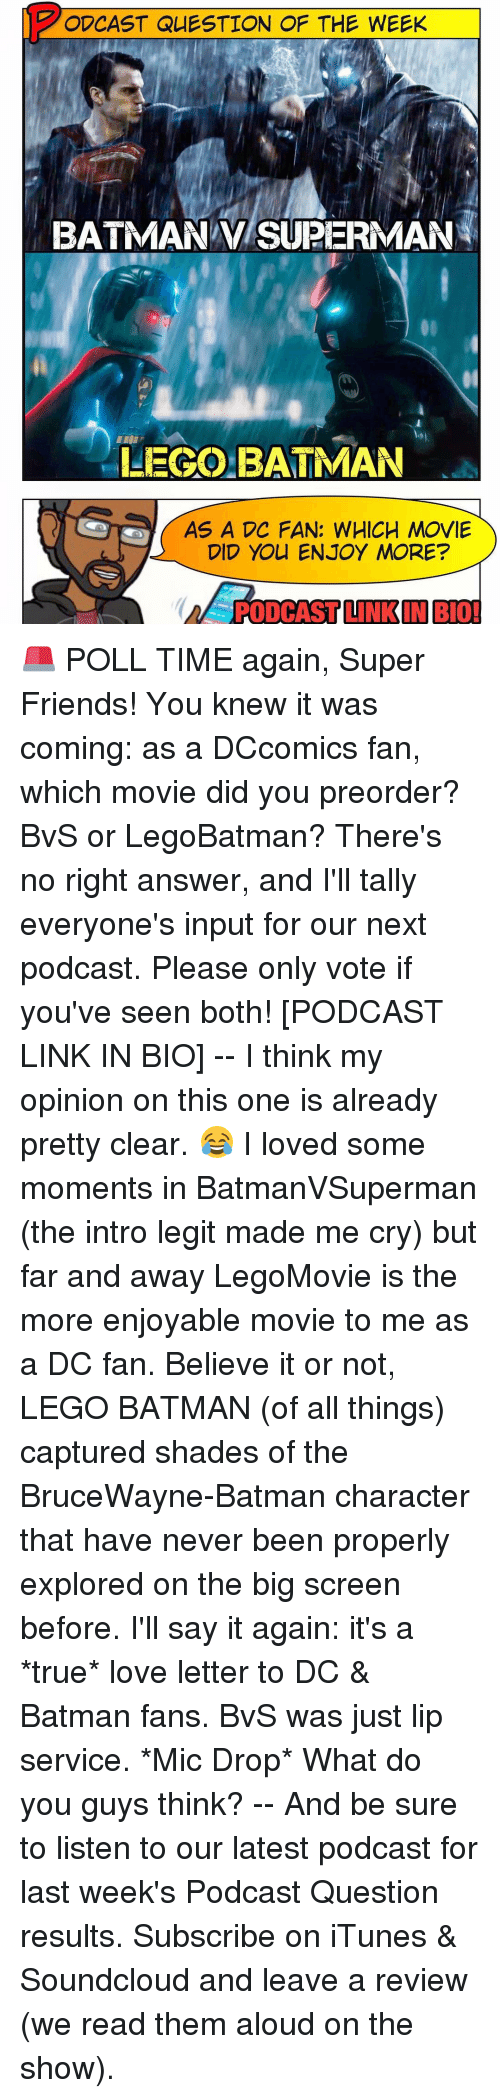 far and away: PODCAST QUESTION OF THE WEEK  BATMAN SUPERMAN  LEGO BATMAN  AS A DC FAN: WHICH MOVIE  DID YOU ENJOY MORE?  PODCAST INK IN BIO! 🚨 POLL TIME again, Super Friends! You knew it was coming: as a DCcomics fan, which movie did you preorder? BvS or LegoBatman? There's no right answer, and I'll tally everyone's input for our next podcast. Please only vote if you've seen both! [PODCAST LINK IN BIO] -- I think my opinion on this one is already pretty clear. 😂 I loved some moments in BatmanVSuperman (the intro legit made me cry) but far and away LegoMovie is the more enjoyable movie to me as a DC fan. Believe it or not, LEGO BATMAN (of all things) captured shades of the BruceWayne-Batman character that have never been properly explored on the big screen before. I'll say it again: it's a *true* love letter to DC & Batman fans. BvS was just lip service. *Mic Drop* What do you guys think? -- And be sure to listen to our latest podcast for last week's Podcast Question results. Subscribe on iTunes & Soundcloud and leave a review (we read them aloud on the show).